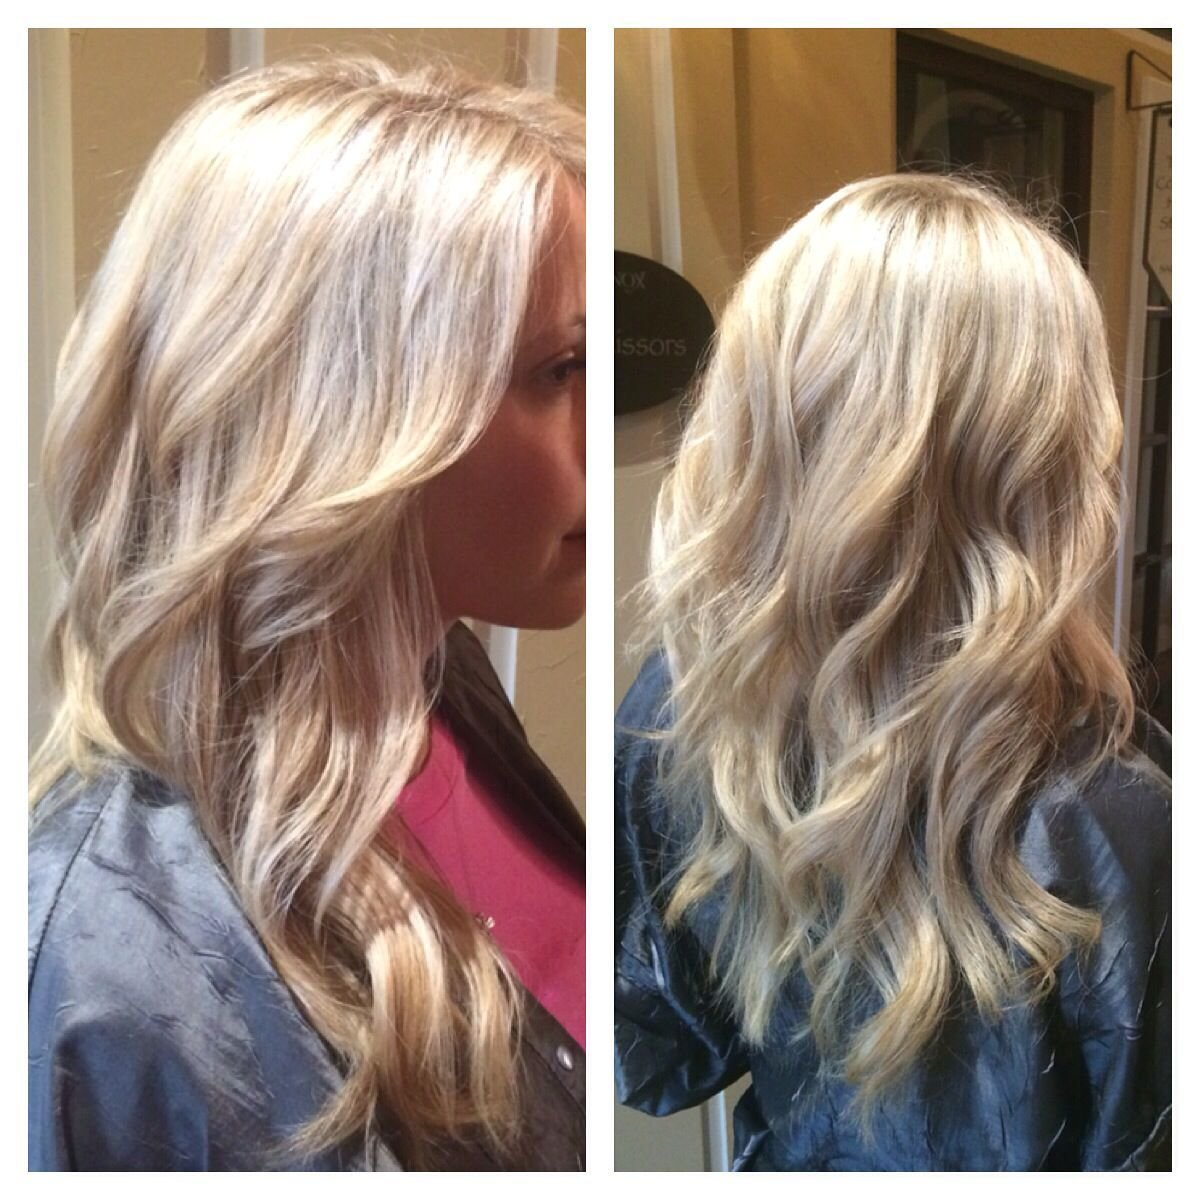 The Best Wella Color Lkn Mooresville Salon Blonde Long Layers Waves Pictures